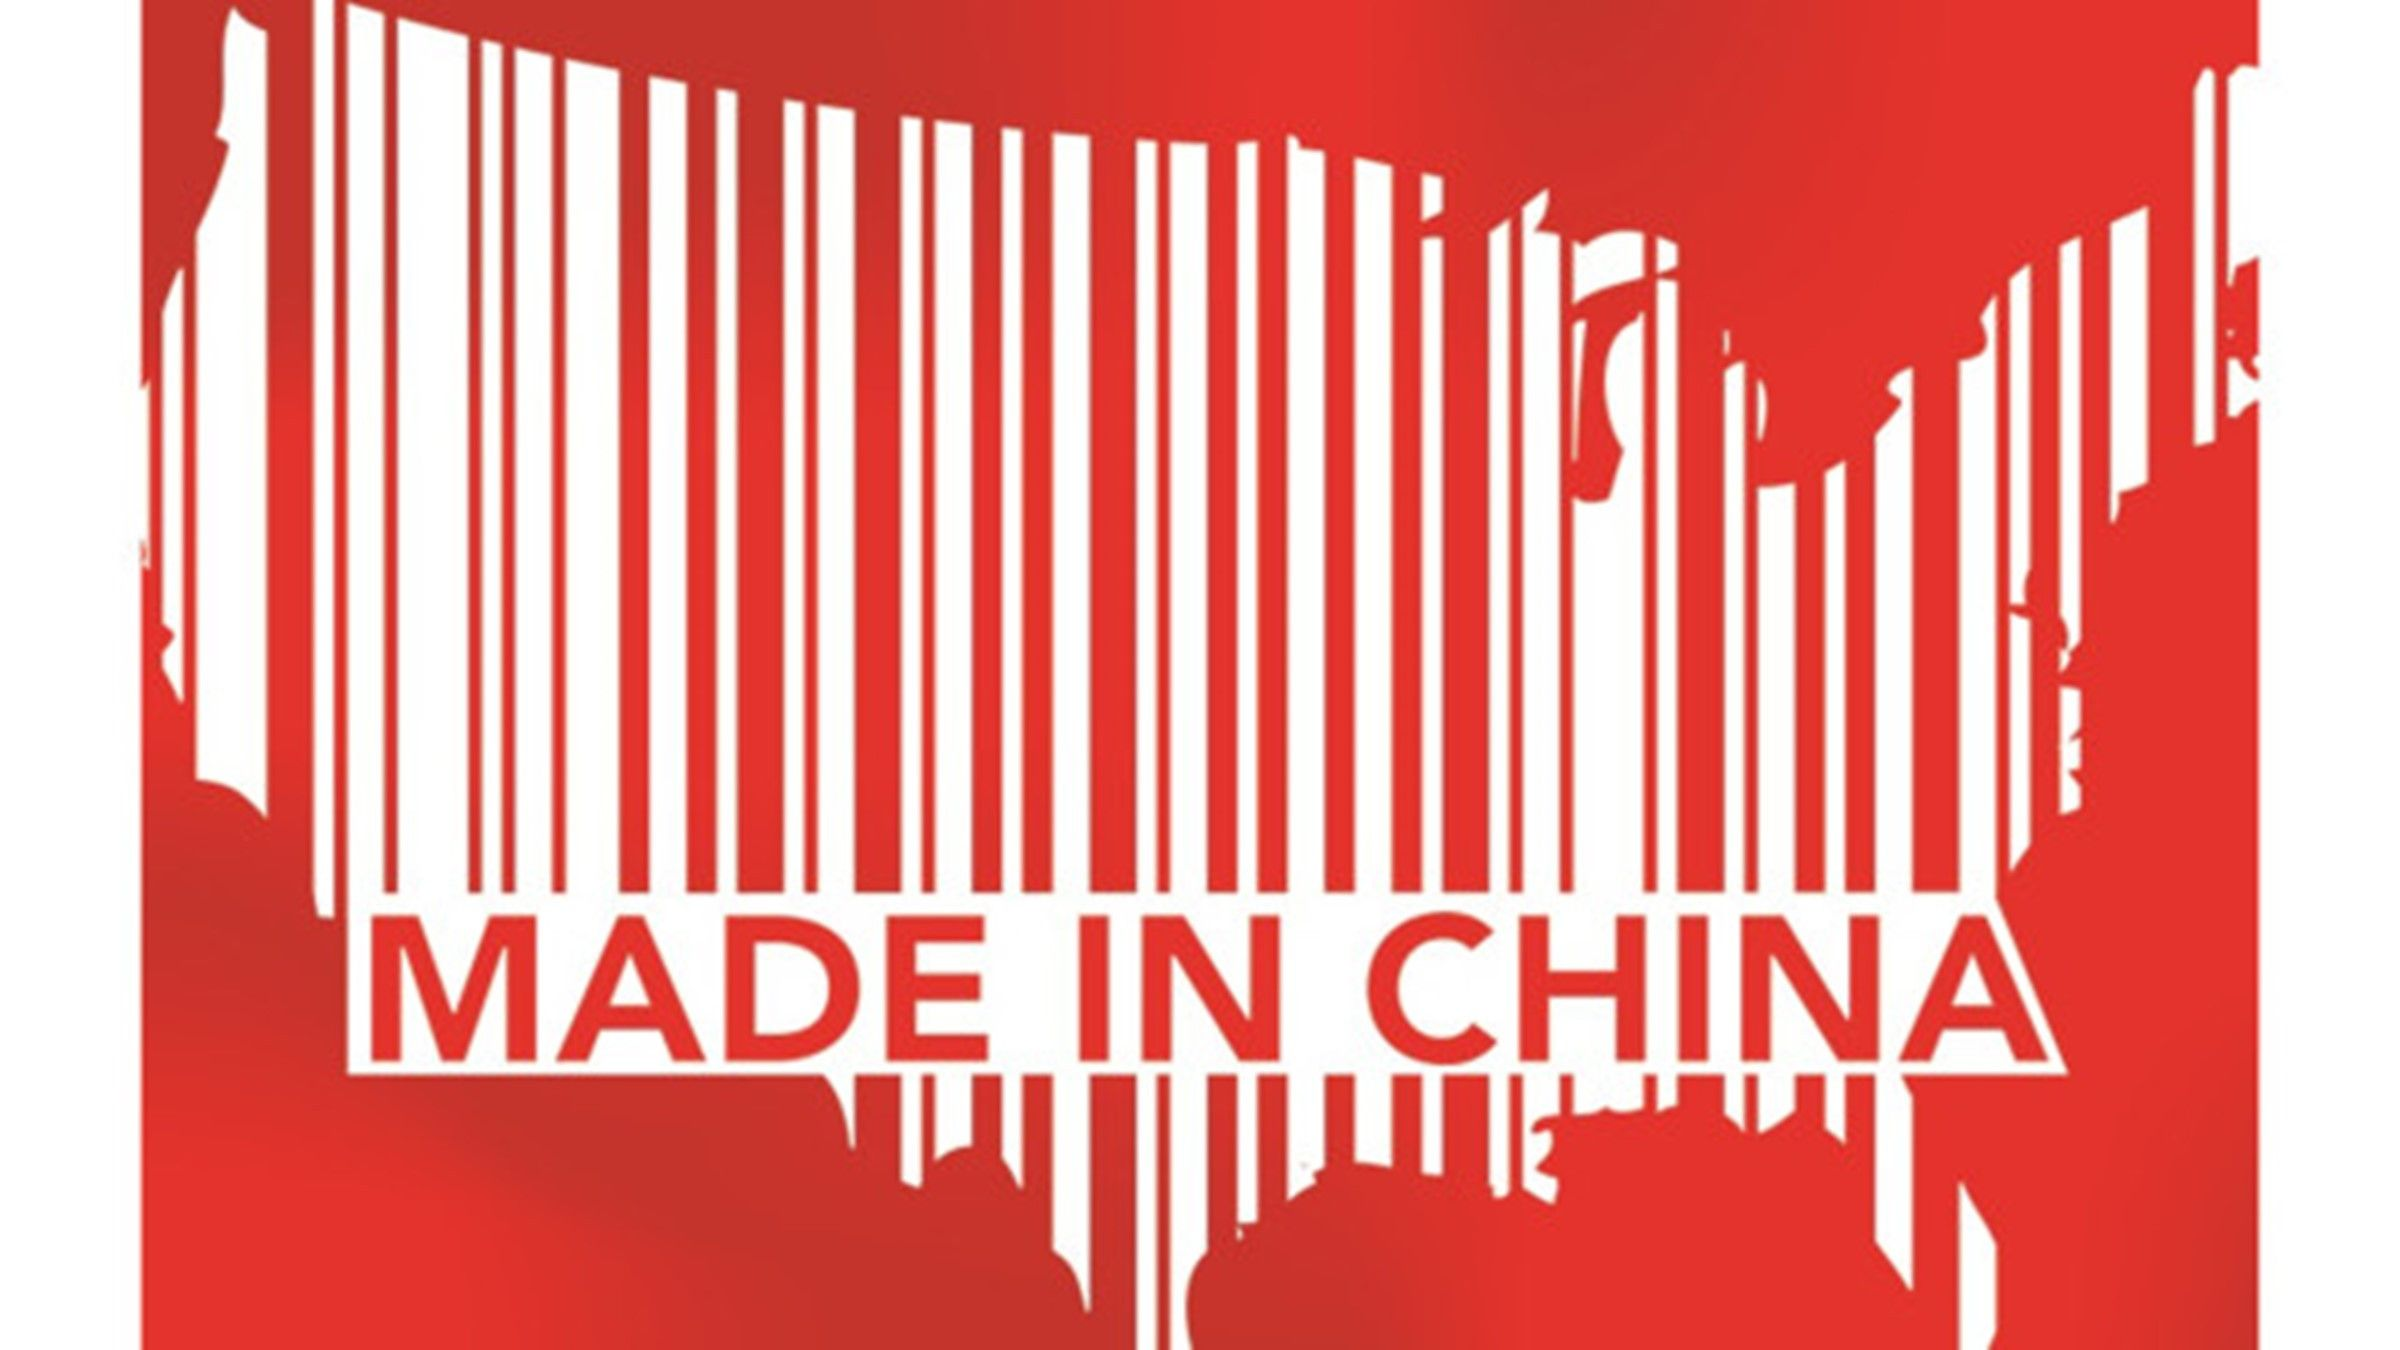 China S Economic Expansionism Must Be Blunted By Trade And